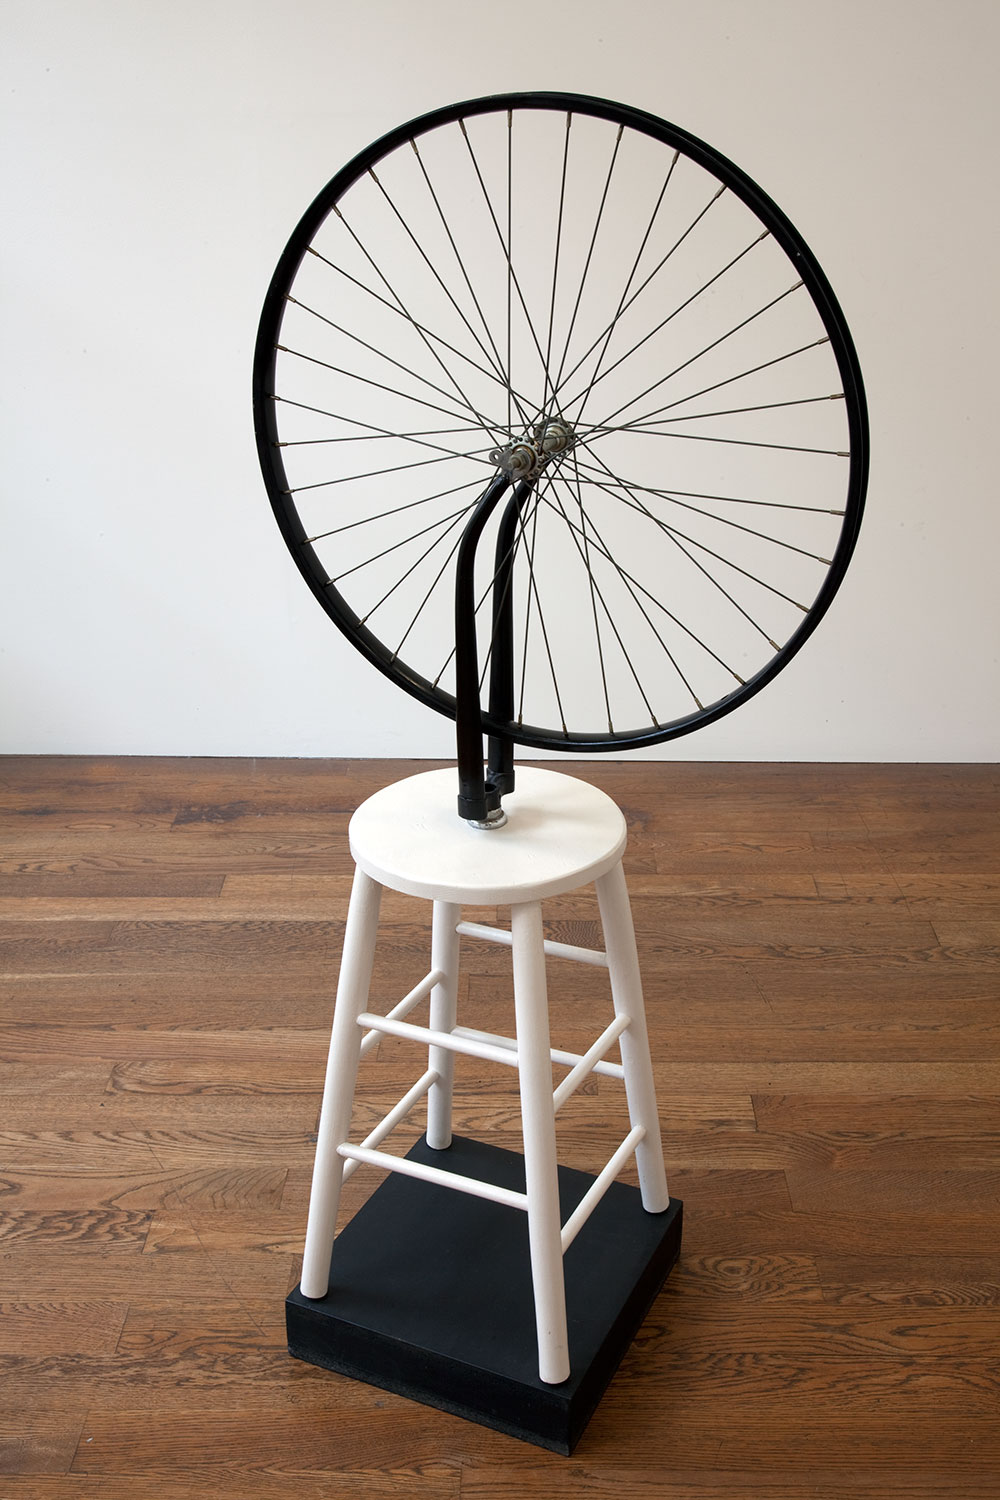 Sturtevant, 'Duchamp Bicycle Wheel' (1969-1973, bicycle wheel on wooden stool) 2